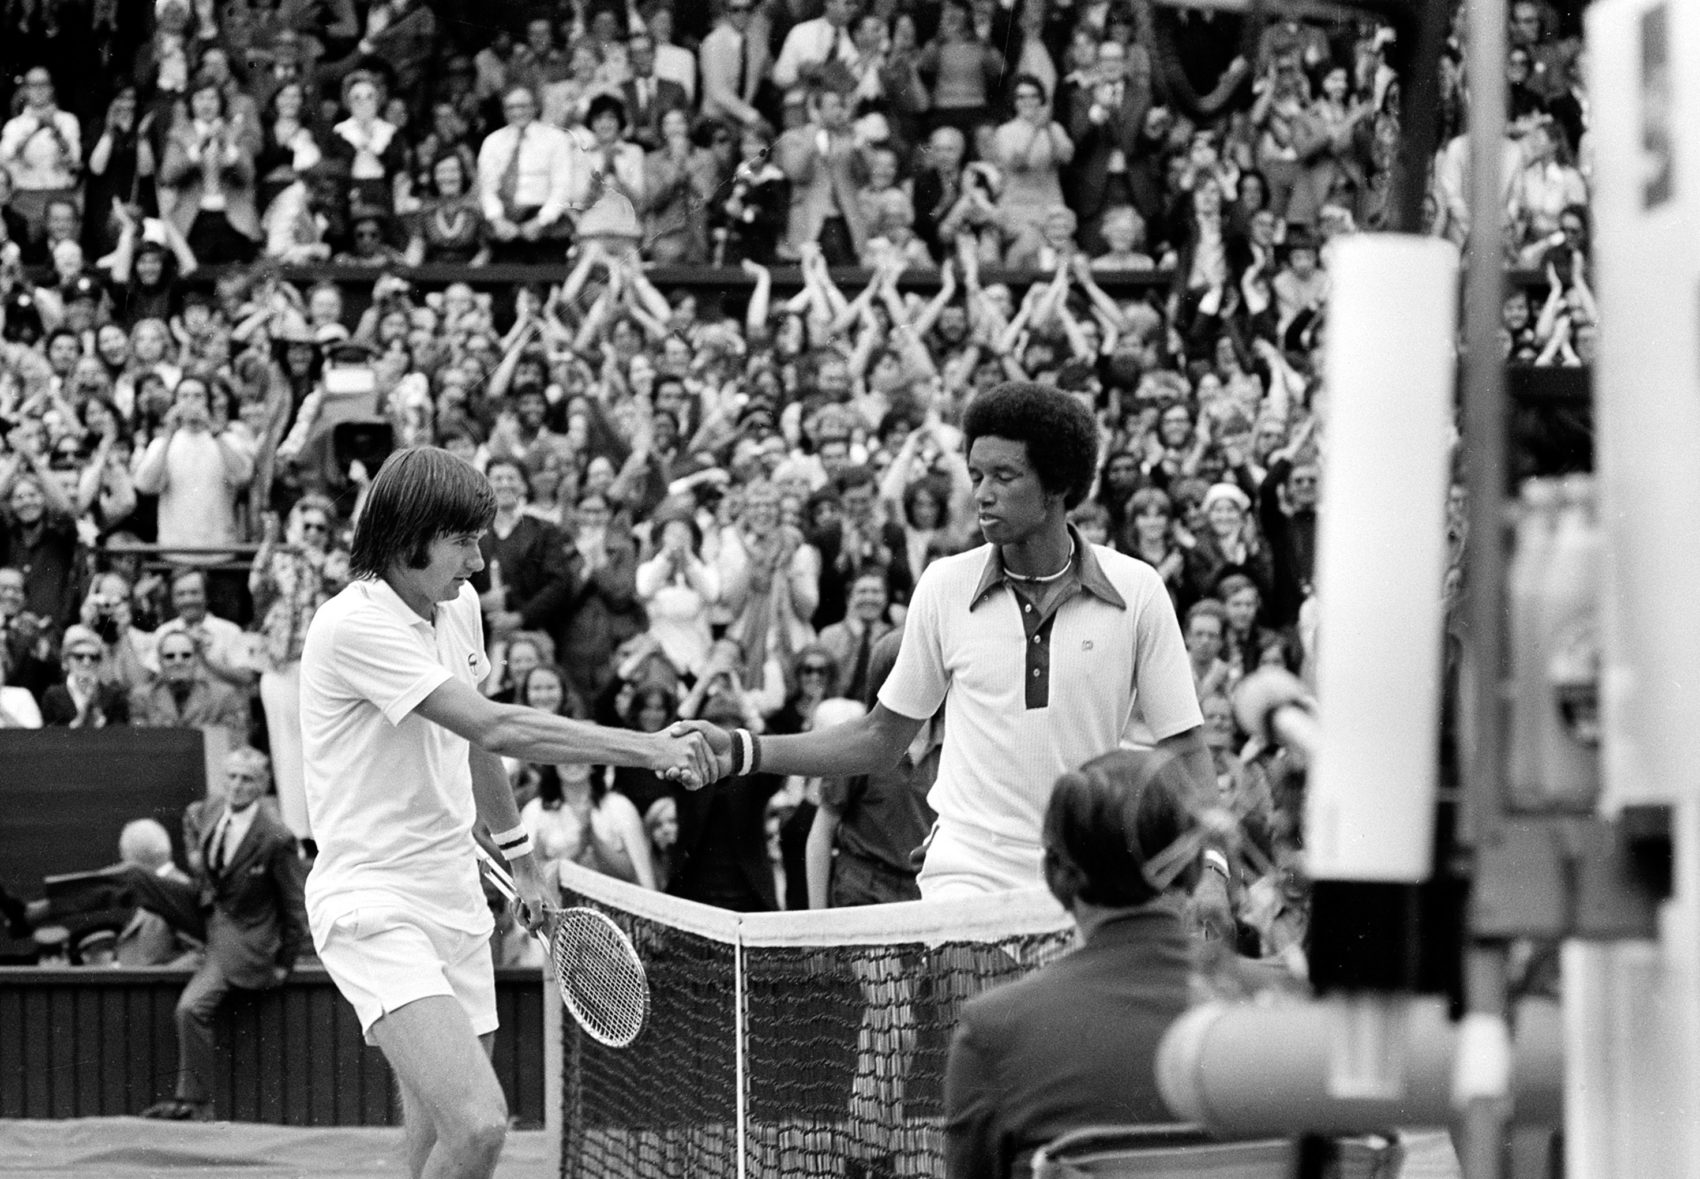 Arthur Ashe and Jimmy Connors clashed in the 1975 Wimbledon men's final. (AP Photo)